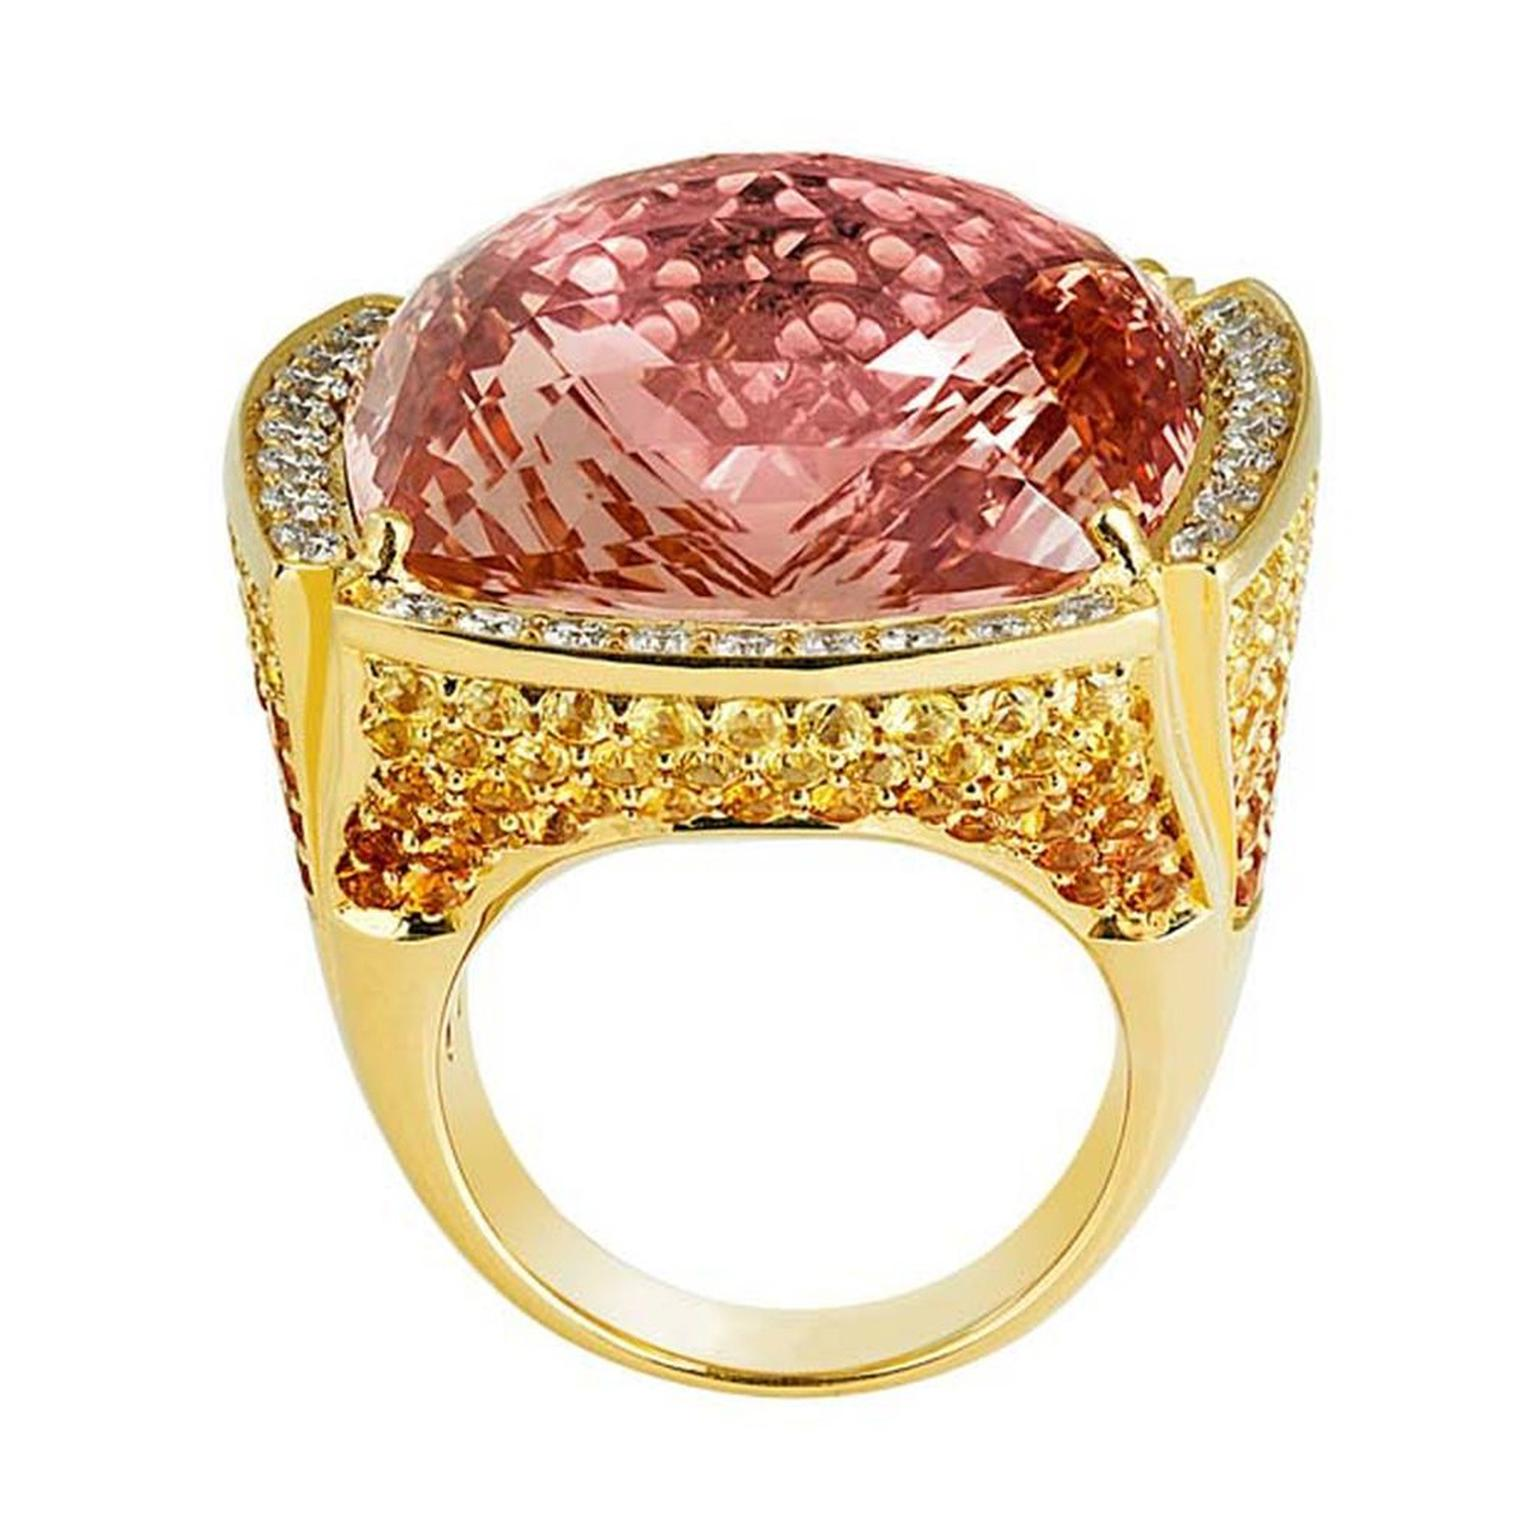 Selected Jewels Grand Palmyra ring in pink gold, set with a 42.28ct cushion-cut morganite surrounded by white diamonds and yellow sapphires.